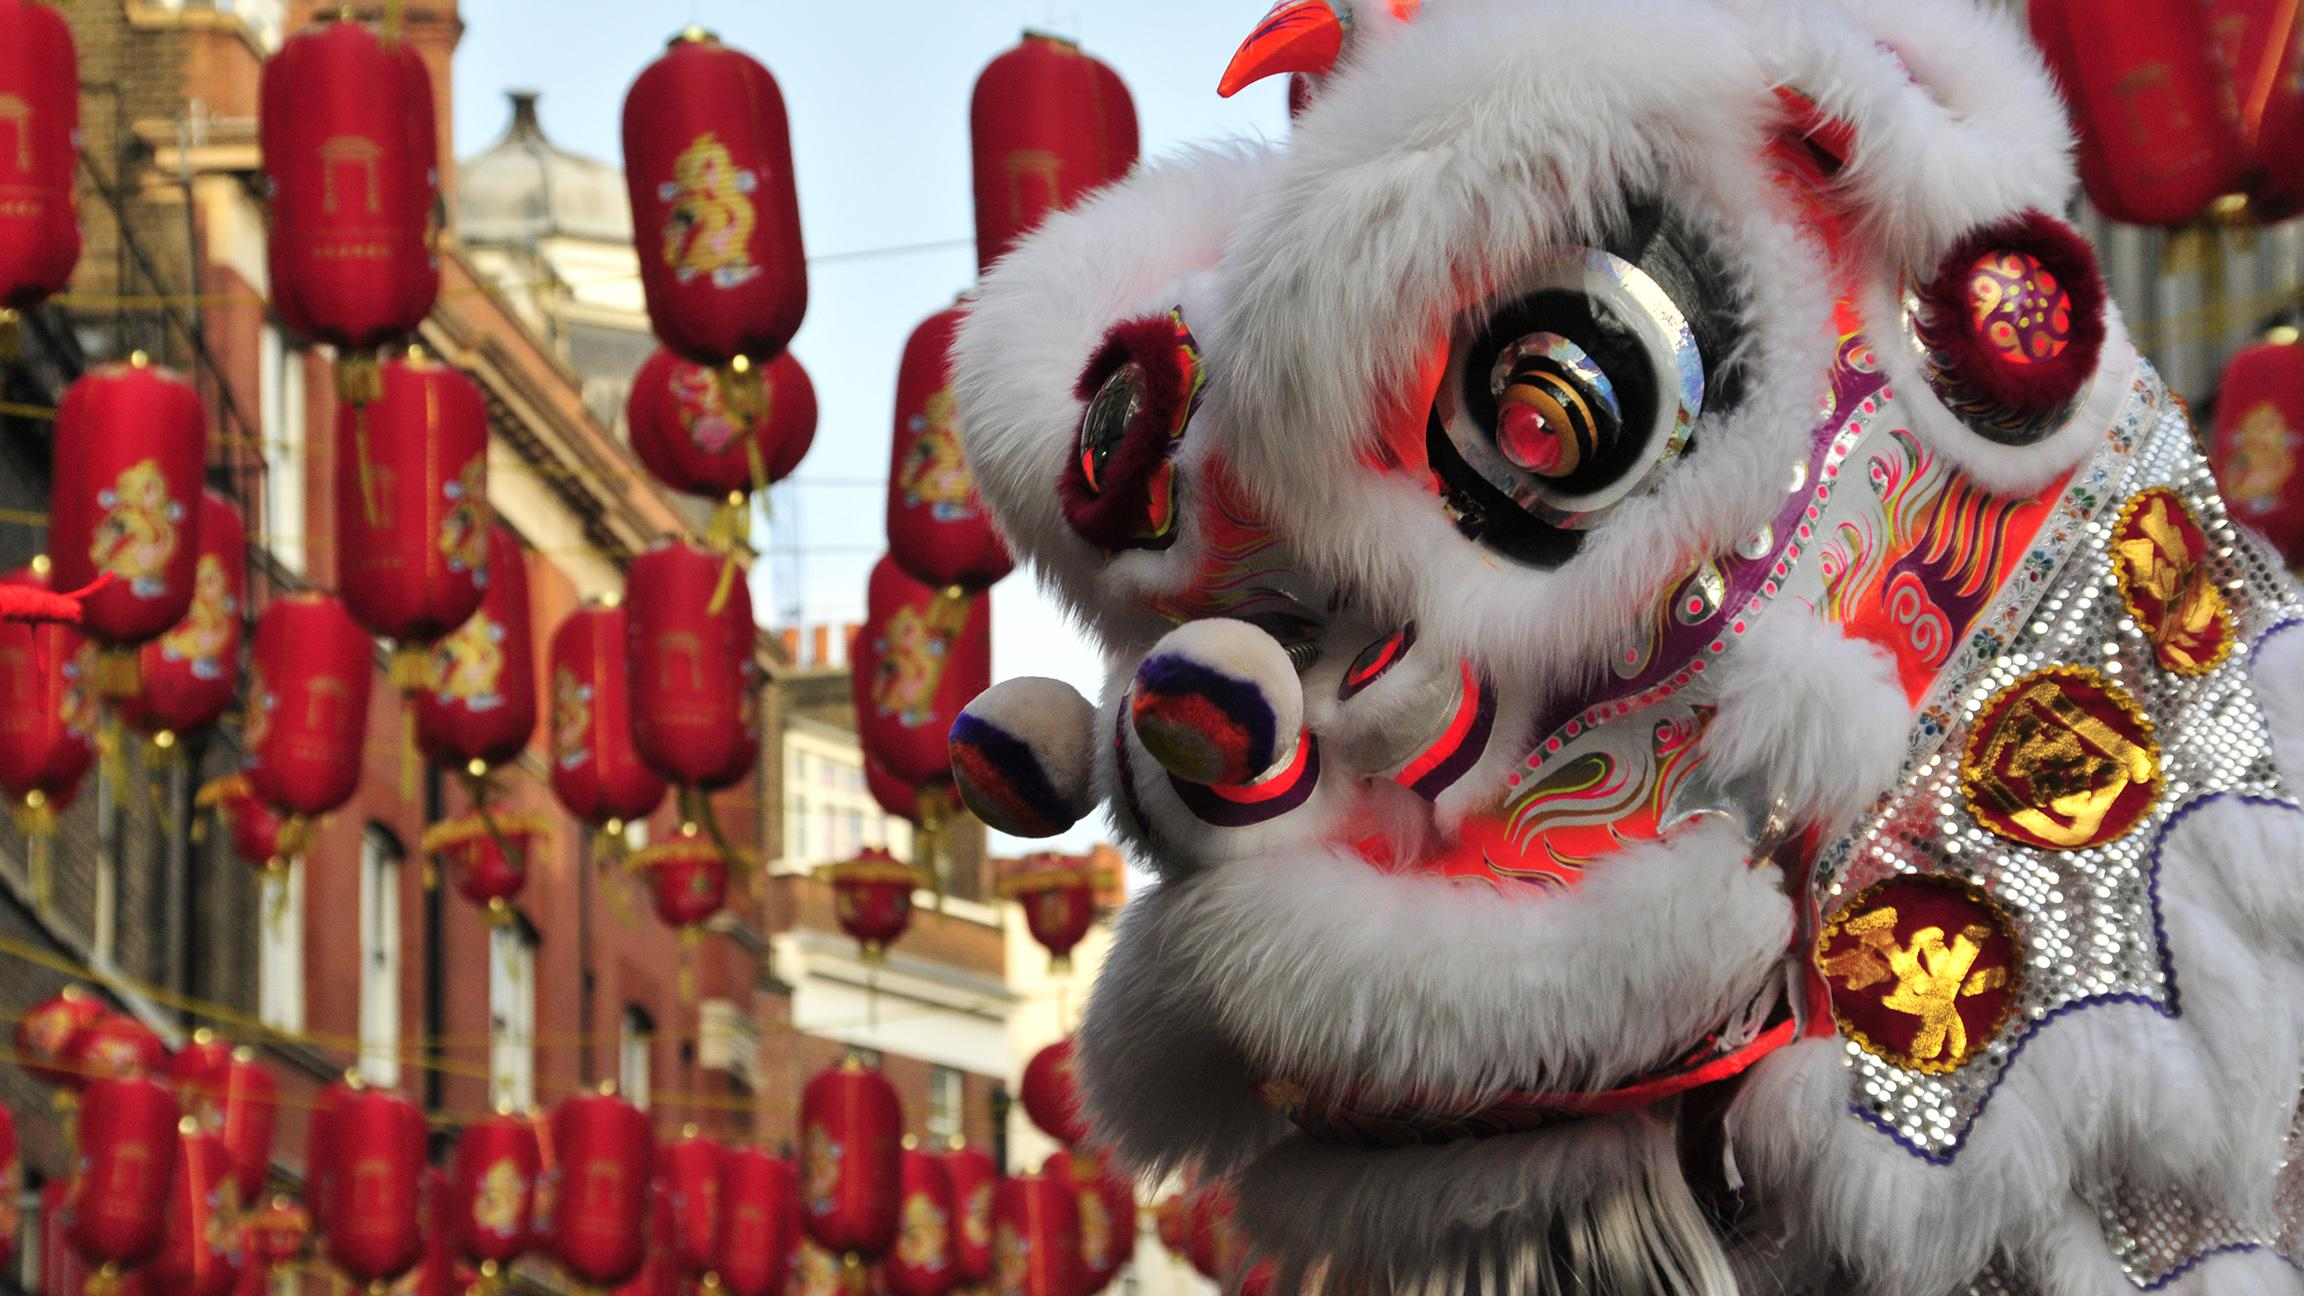 Chinese New Year celebrations take place around the globe each year, including London. (Paul / Flickr)